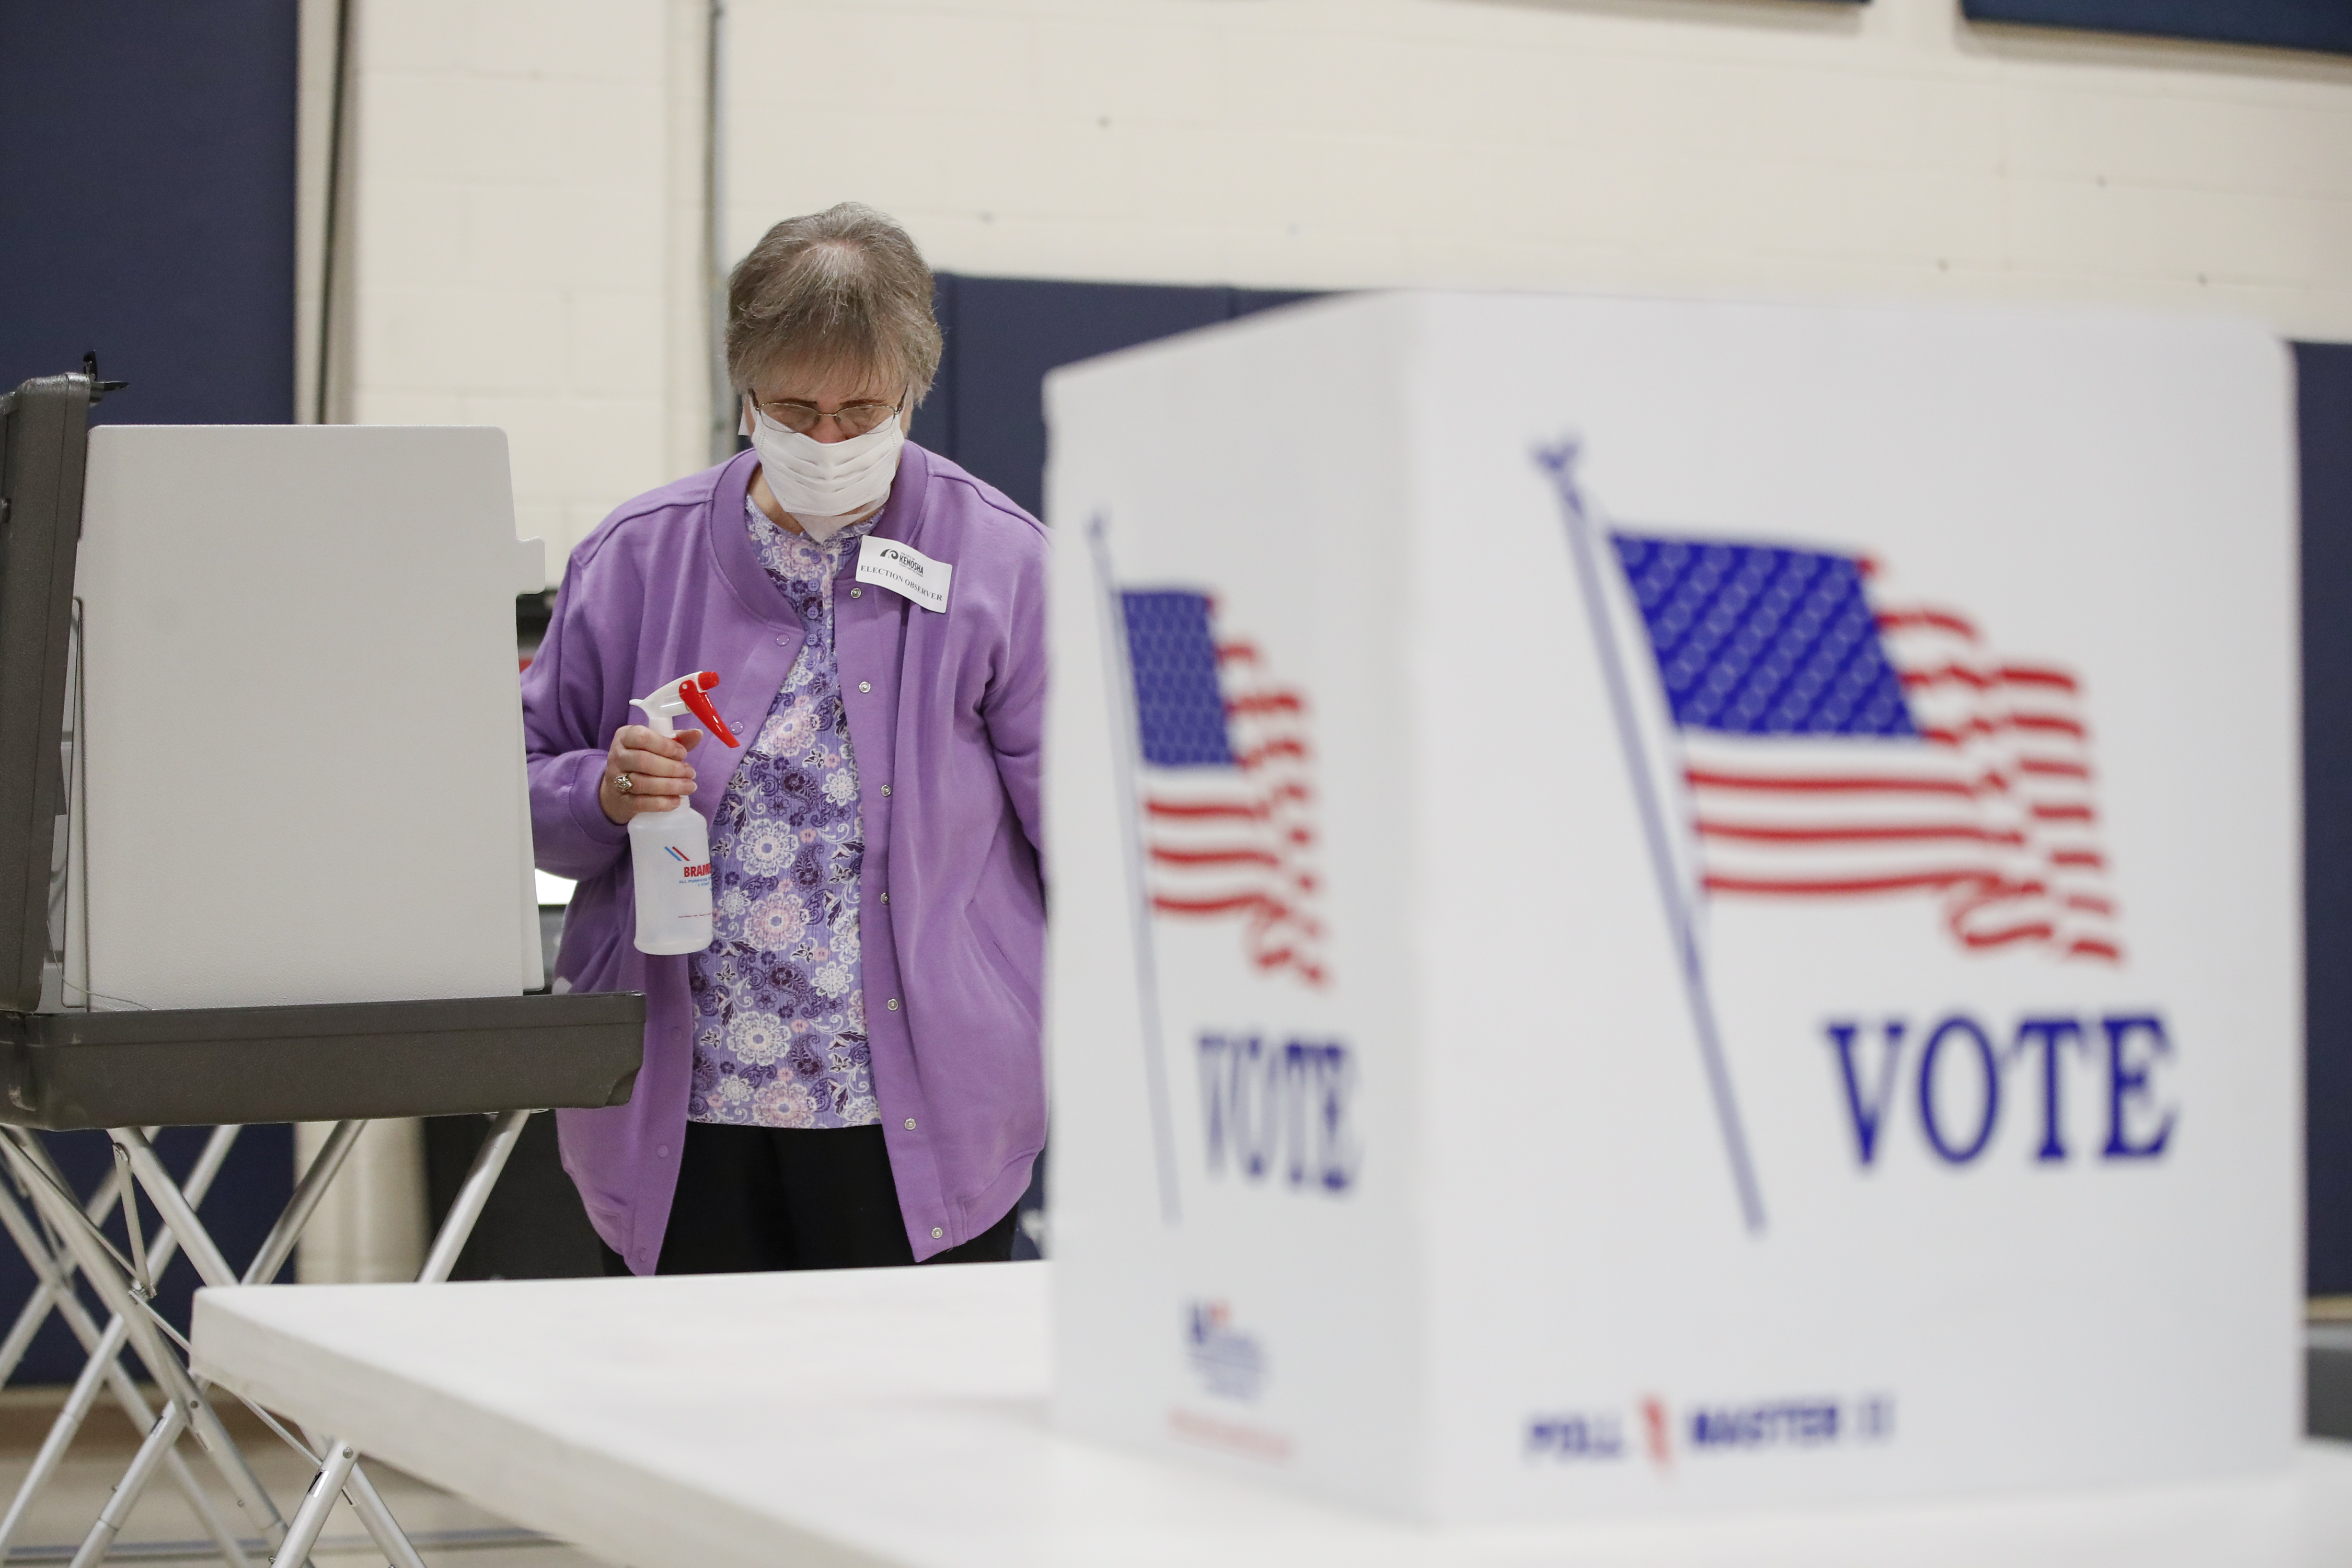 States scramble to recruit thousands of poll workers amid pandemic shortage